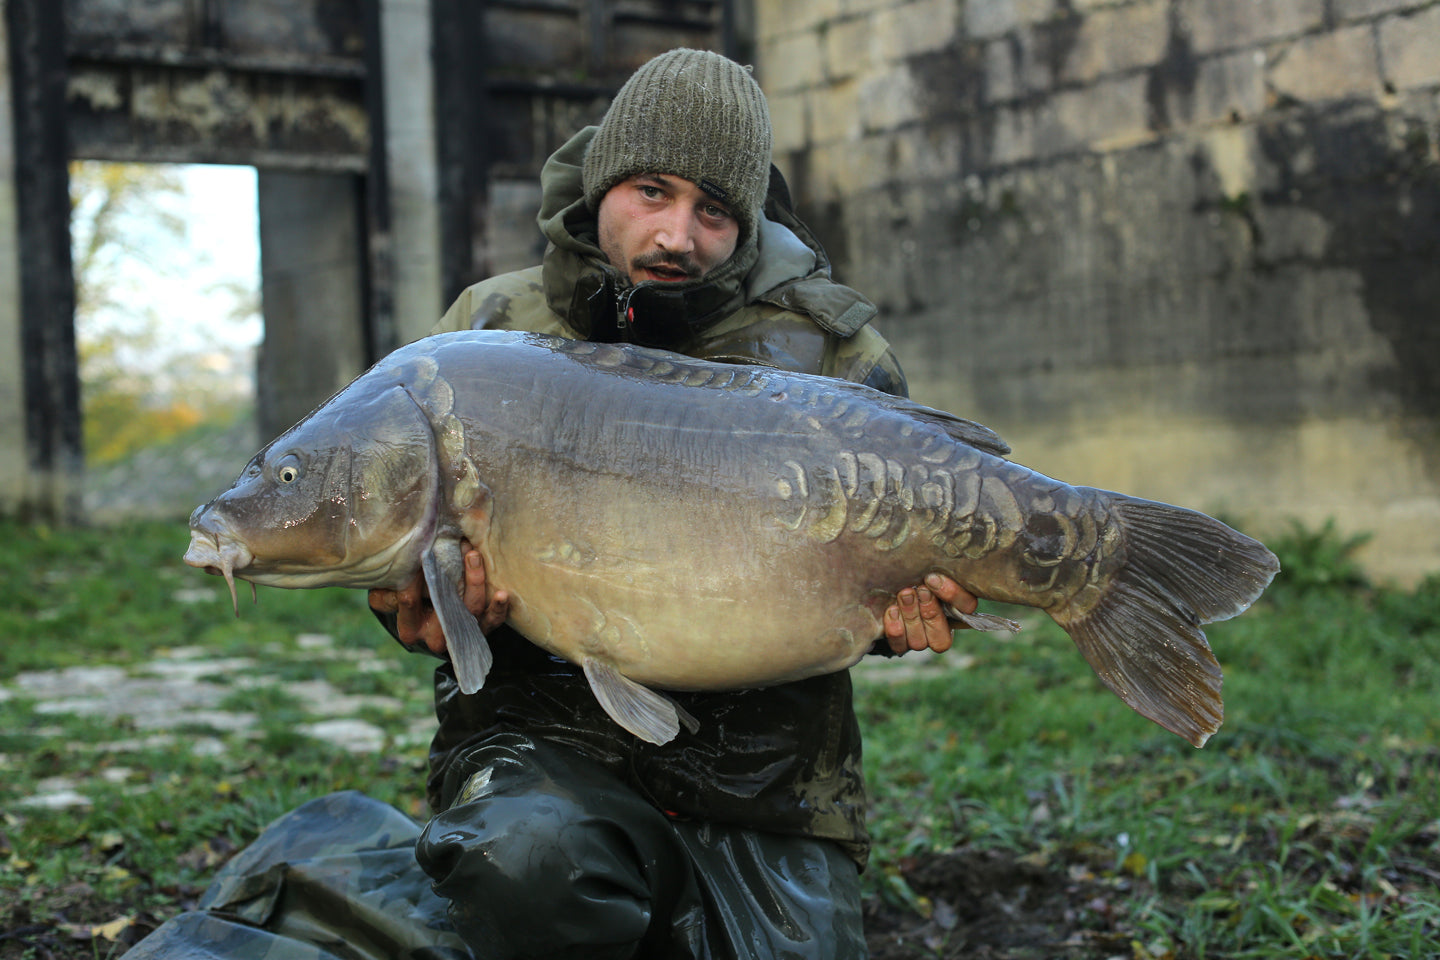 Chris's incredible old fifty pounder